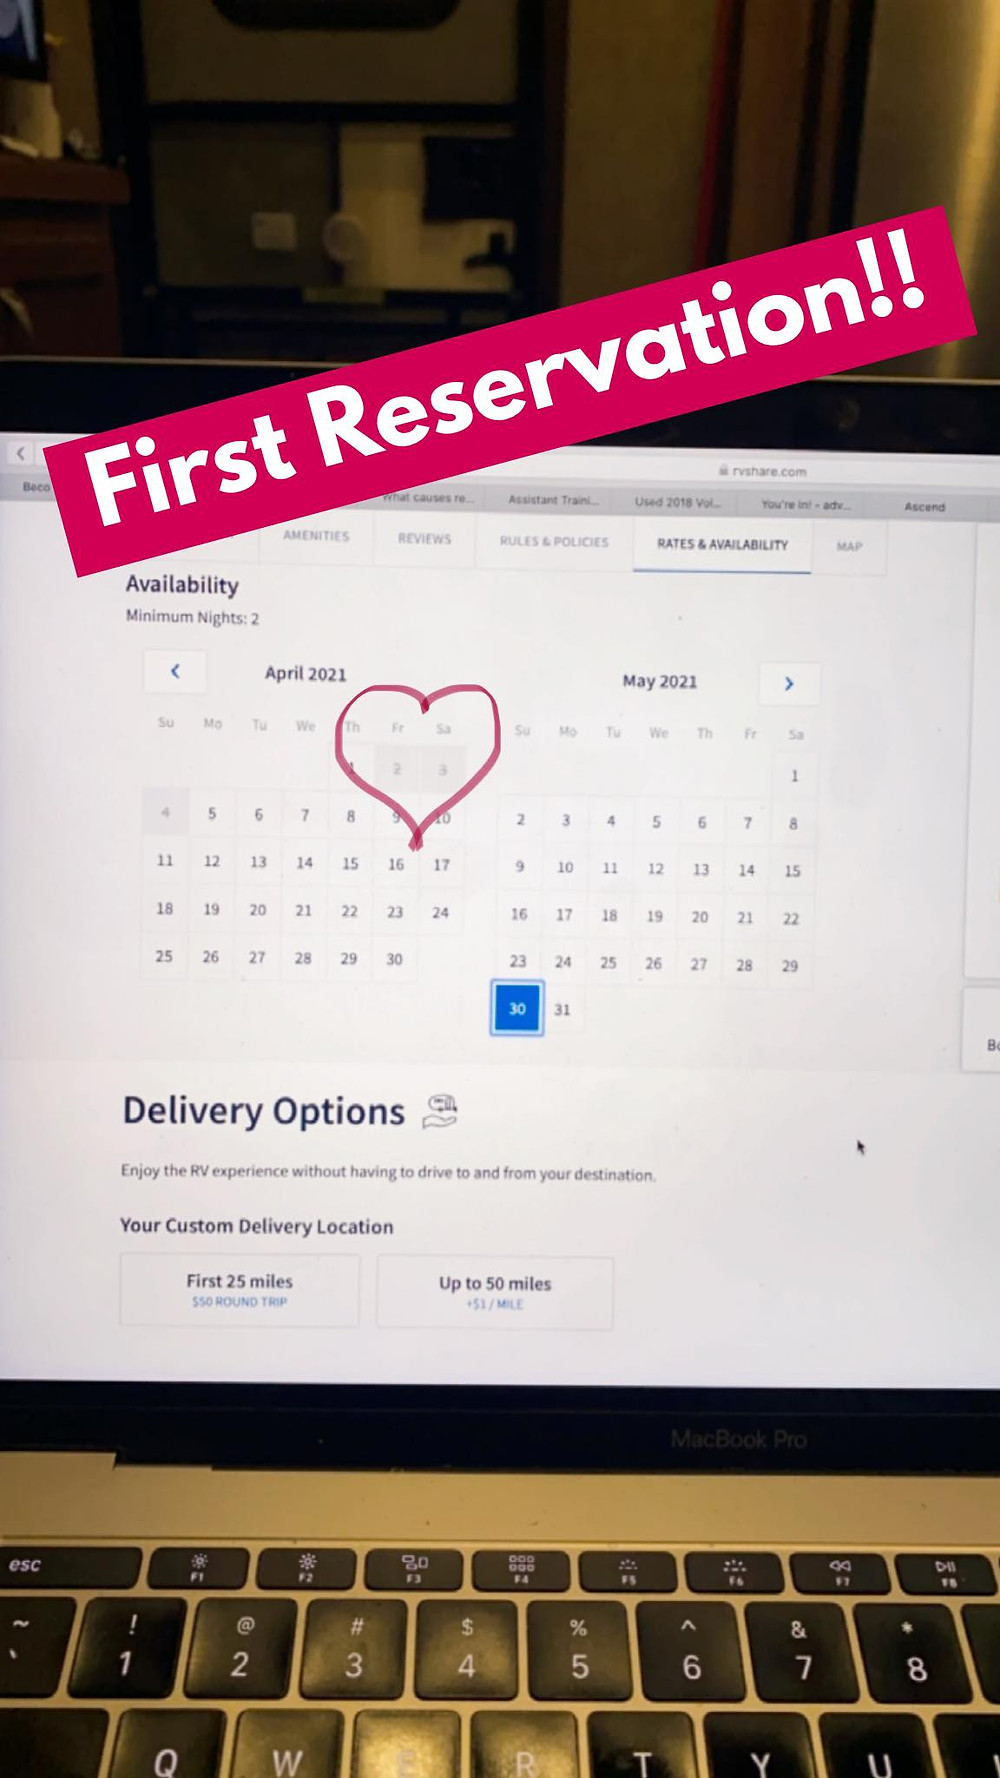 First Reservation on RVshare